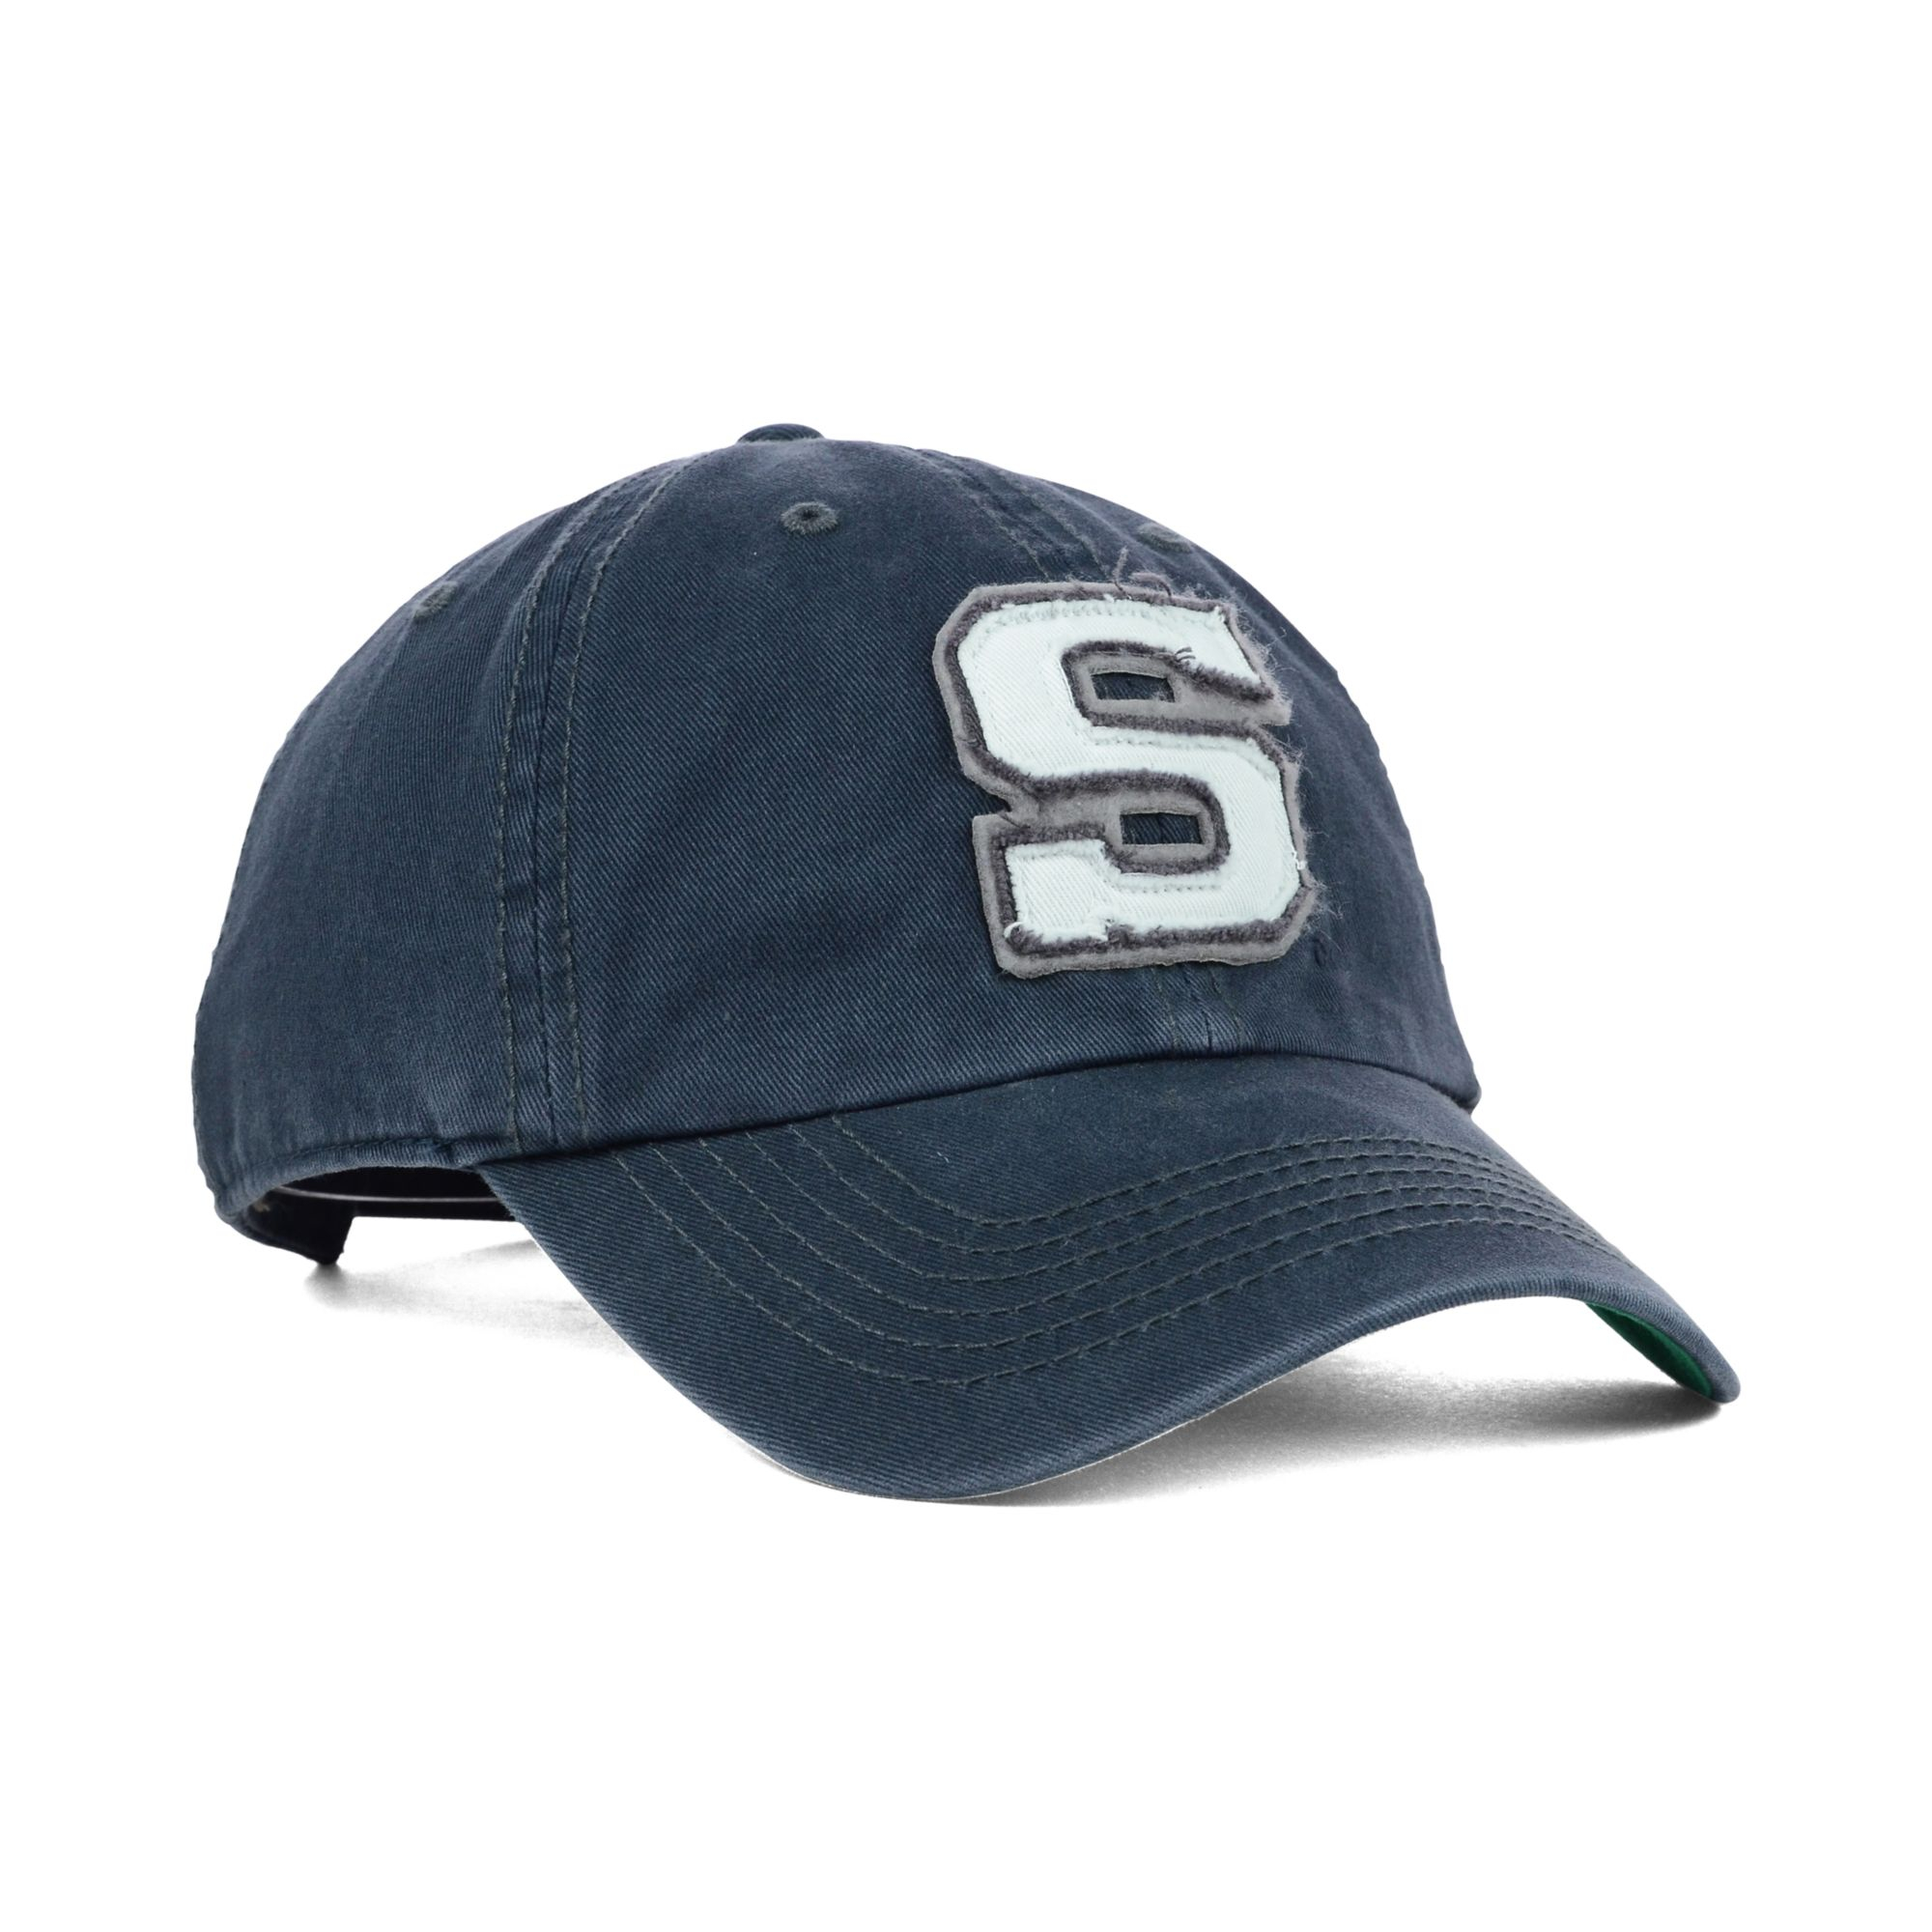 ... shopping lyst 47 brand penn state nittany lions gibraltar clean up cap  in 41fb2 99d74 7aaa78c98bb1